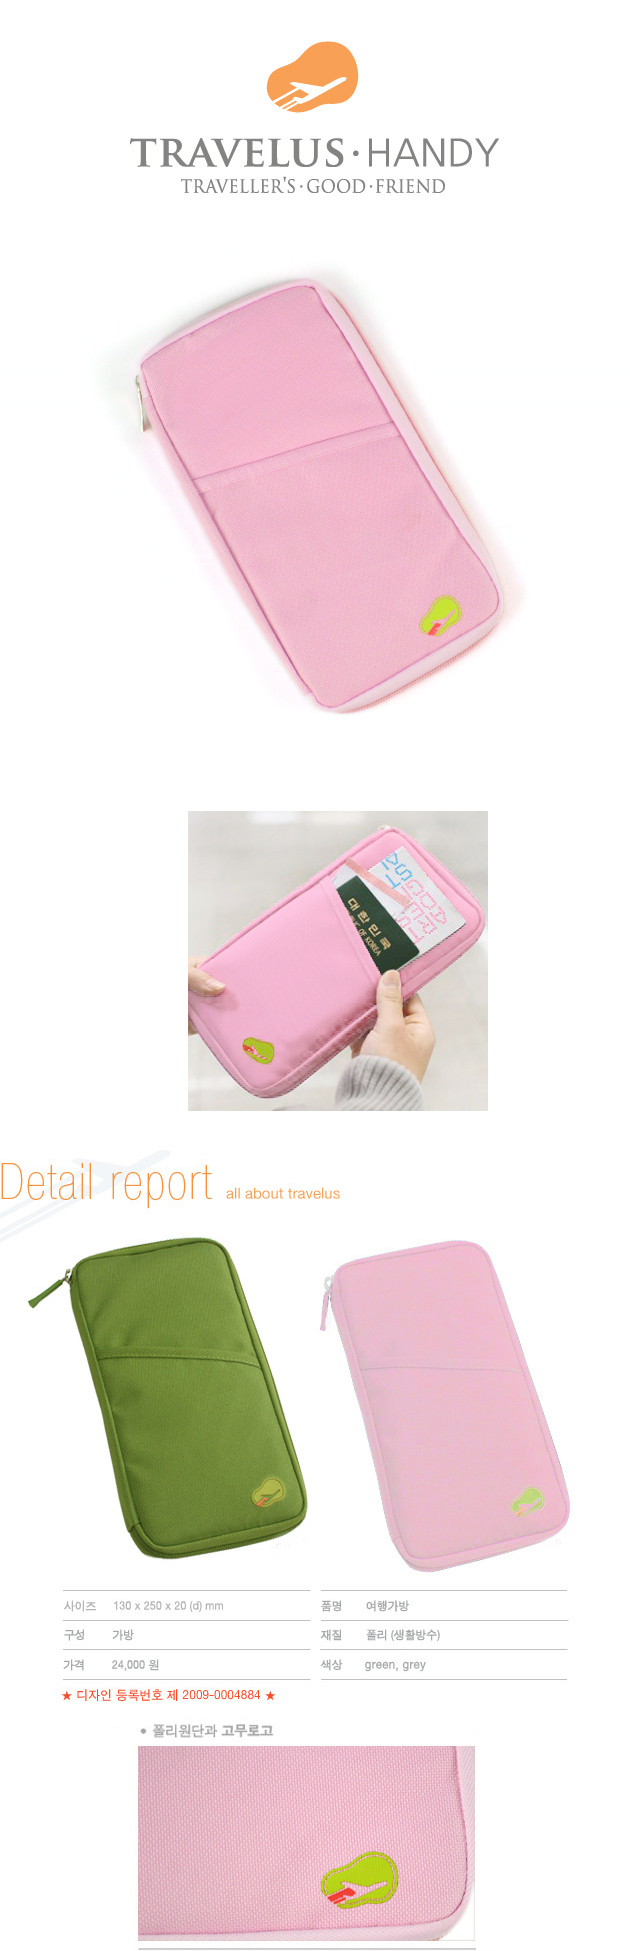 multifunctional-pocket-for-passport-air-ticket-holder-05